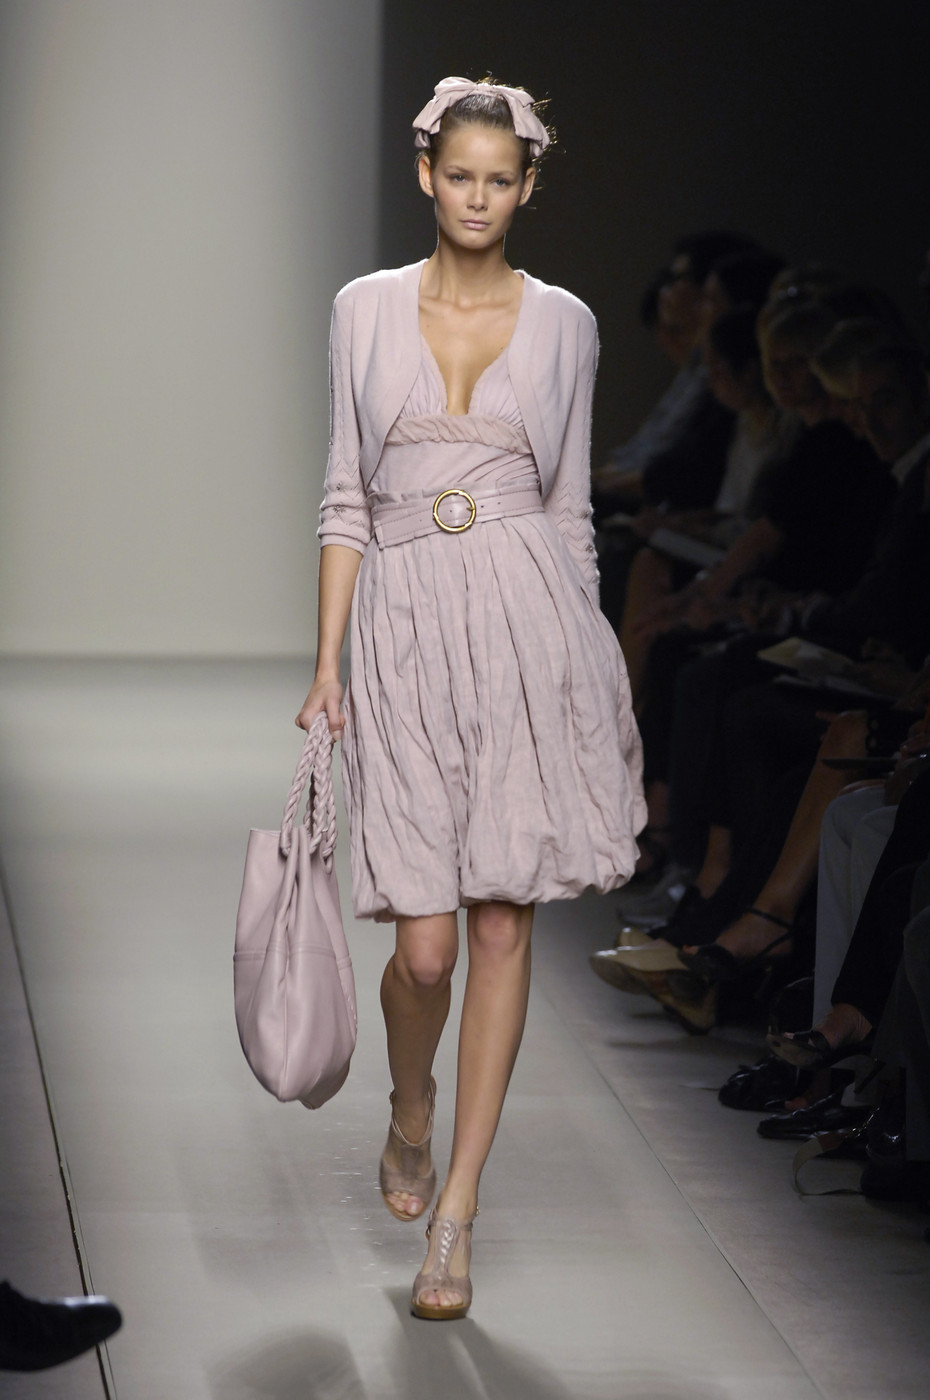 via fashioned by love | bottega veneta spring/summer 2007